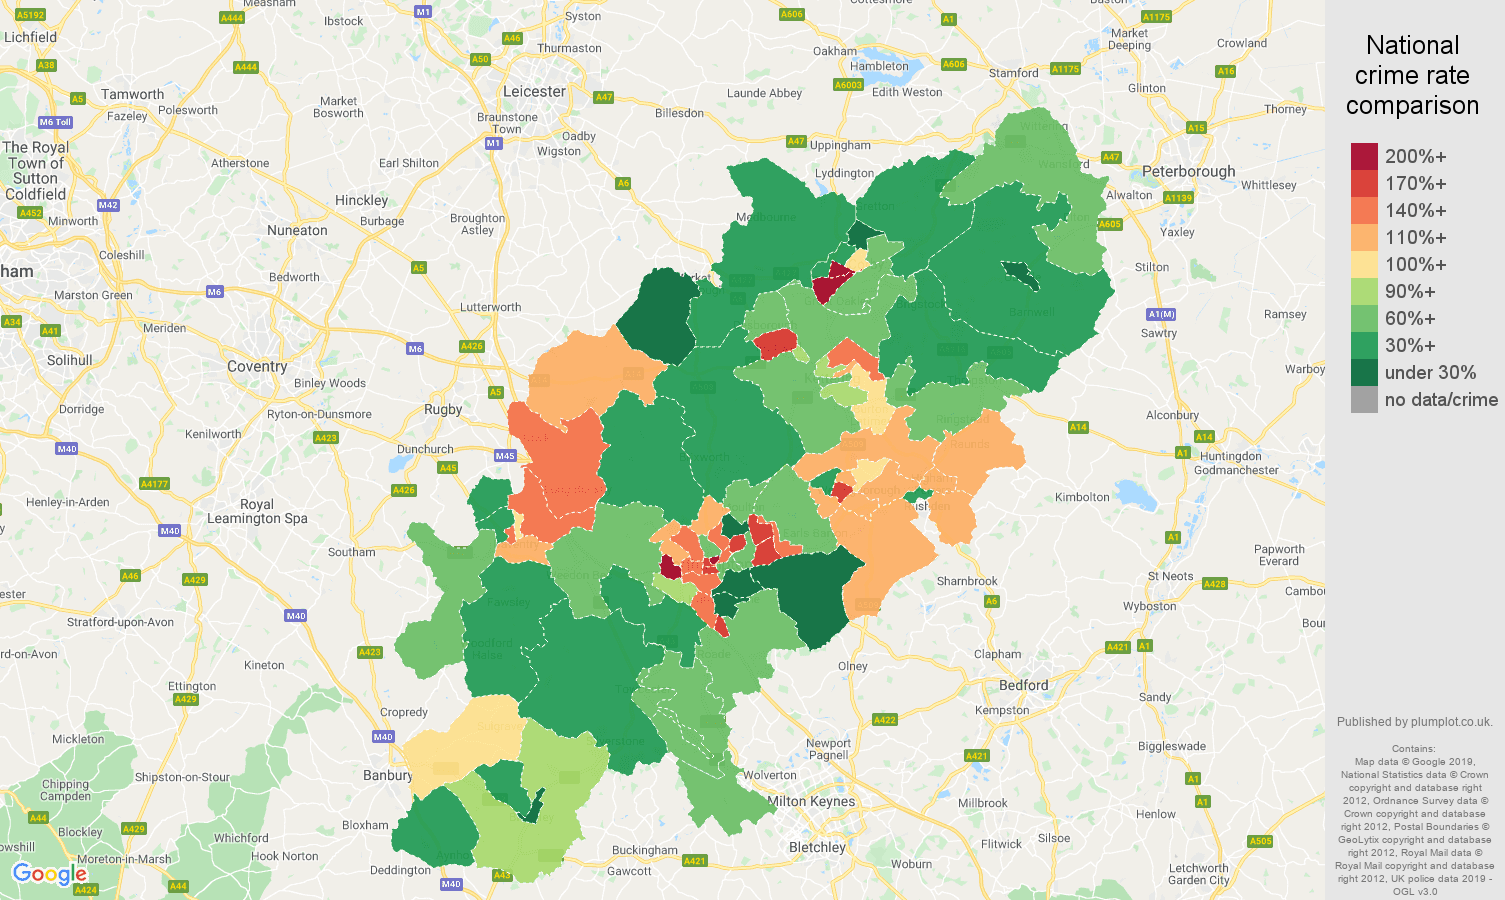 Northamptonshire other crime rate comparison map